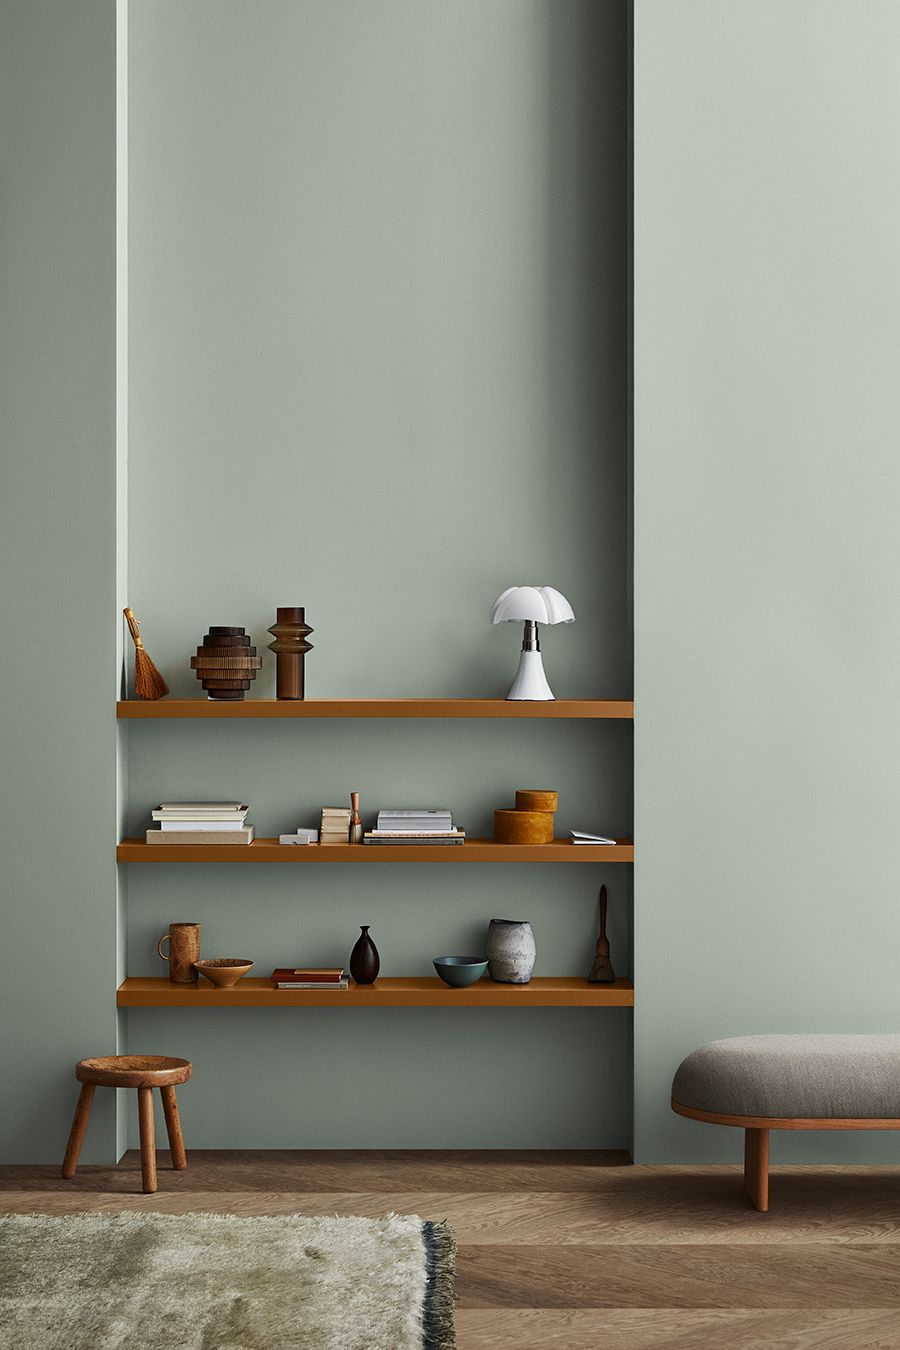 The Color Trends for 2020 Are Inspired by Nature — THE NORDROOM